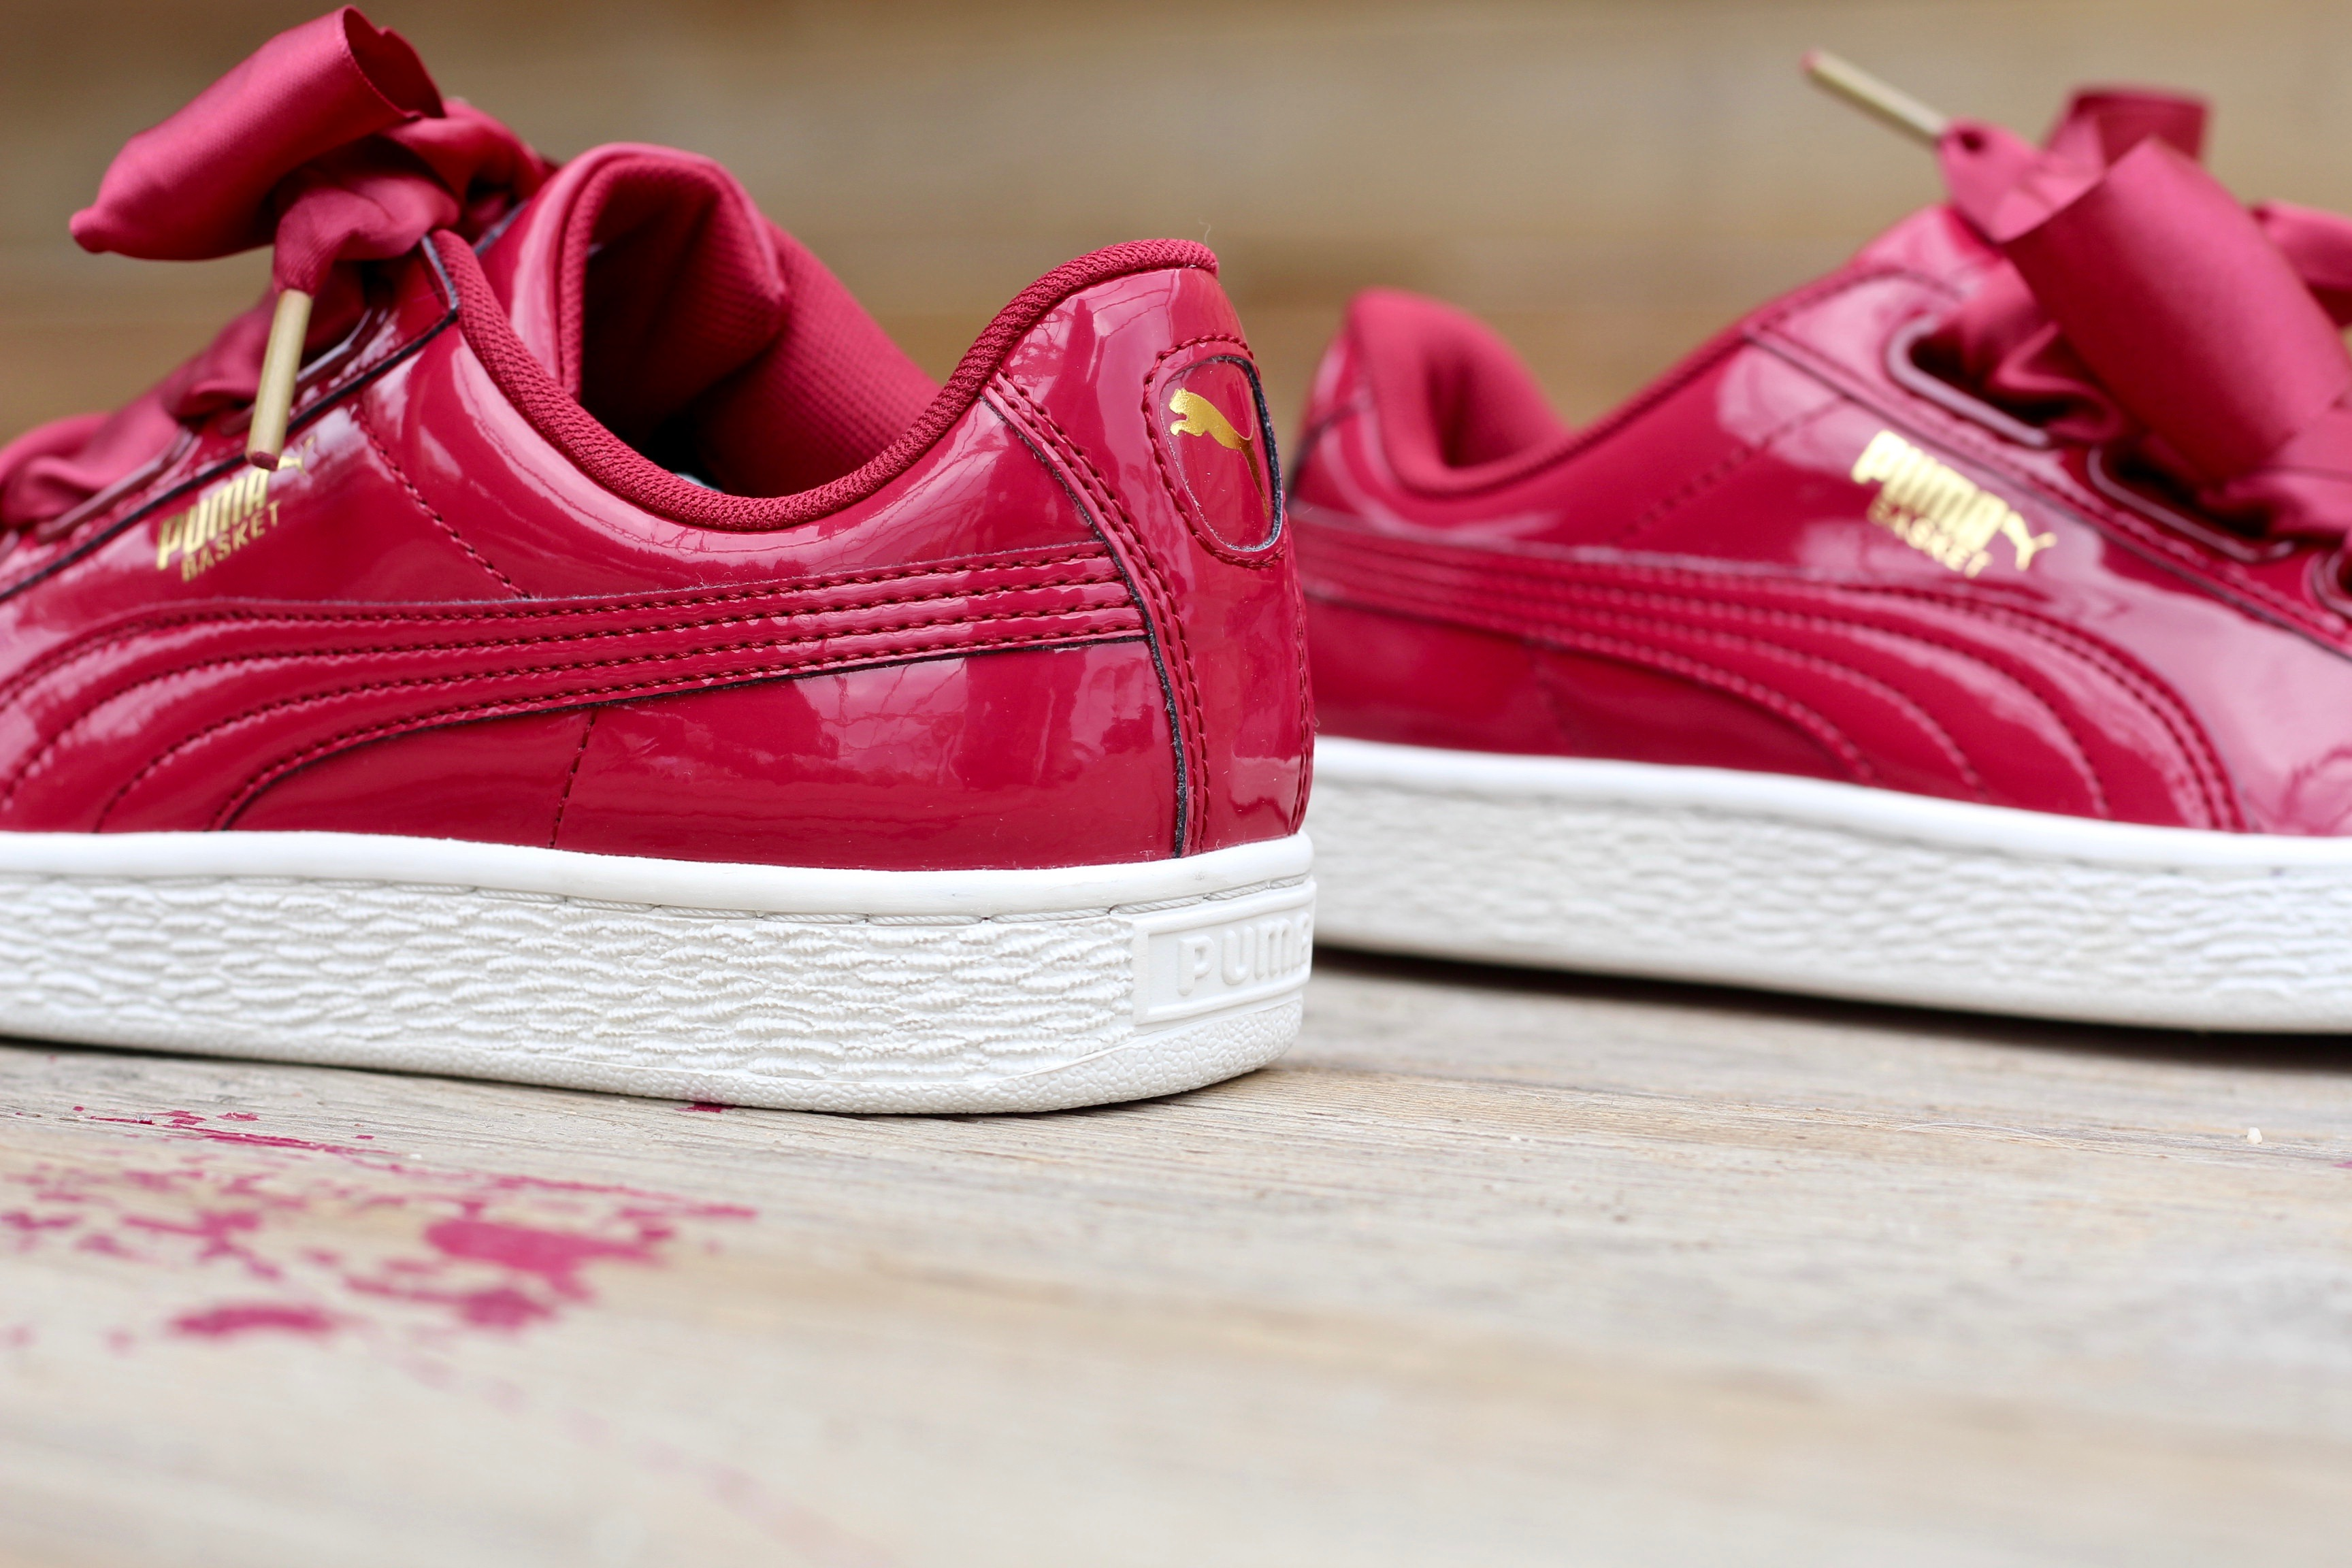 Trainers Puma SizesBn Authentic Women's Heart All Patent Basket FK1cJTl